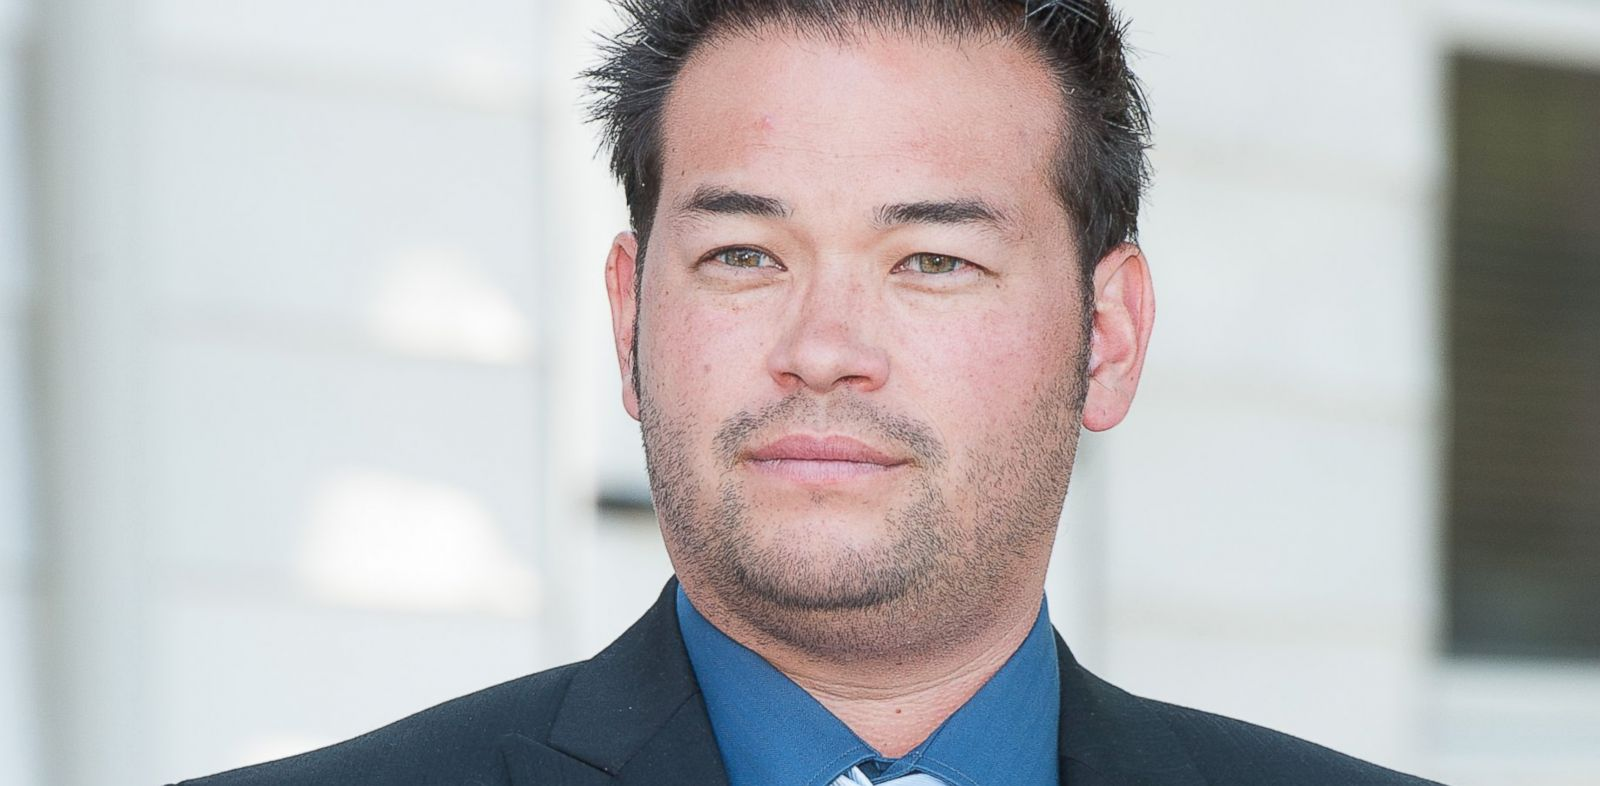 PHOTO: Jon Gosselin attends a press conference in Teaneck, New Jersey, June 27, 2012.